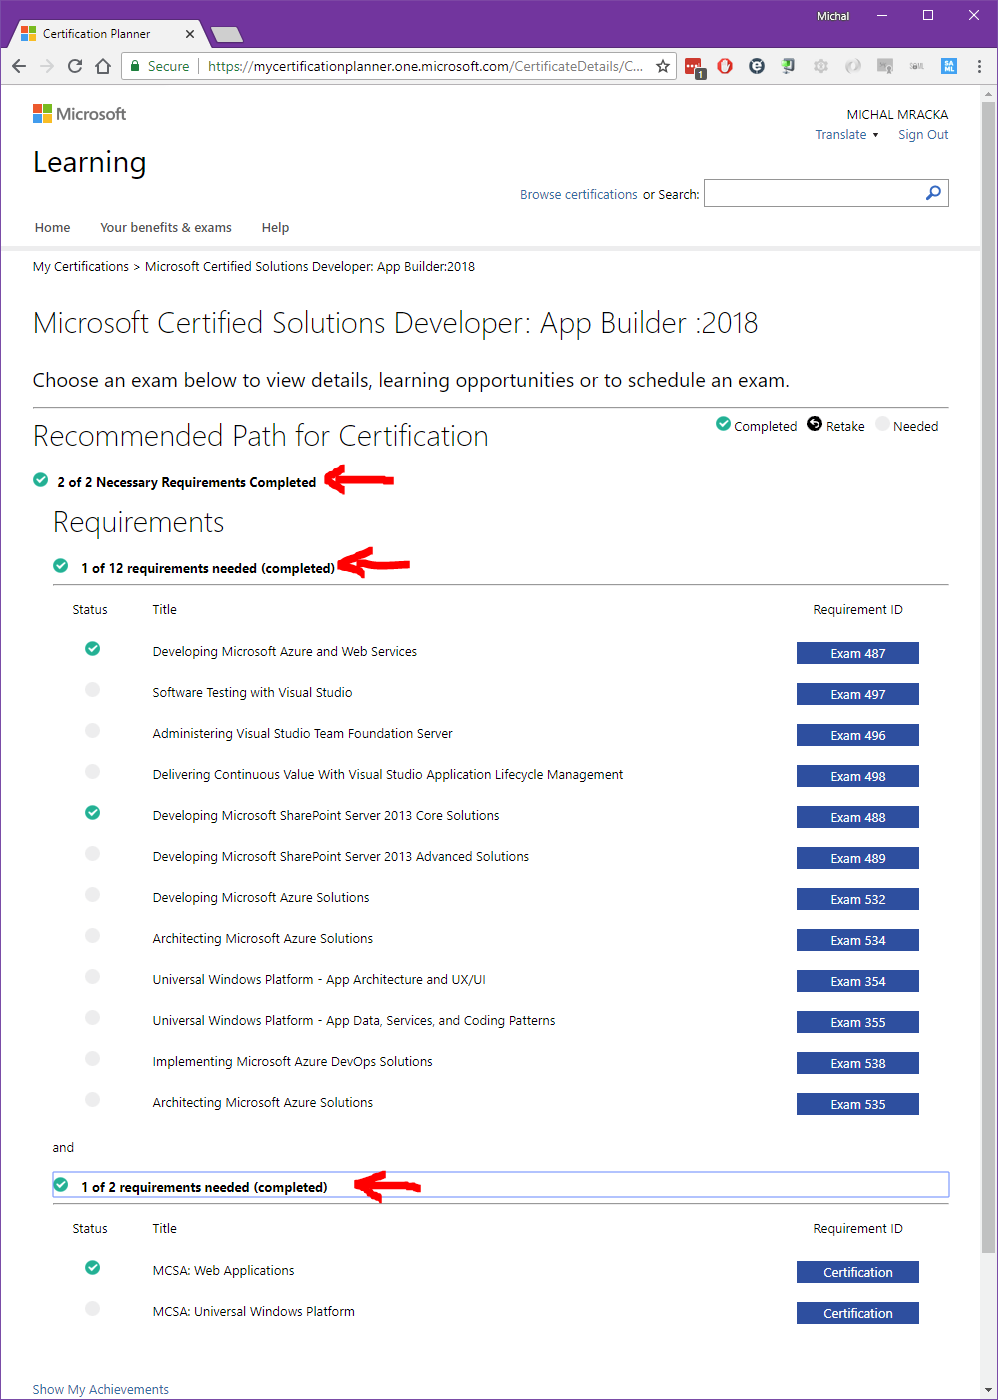 Certification Planner Showing Incorrect Requirements Training